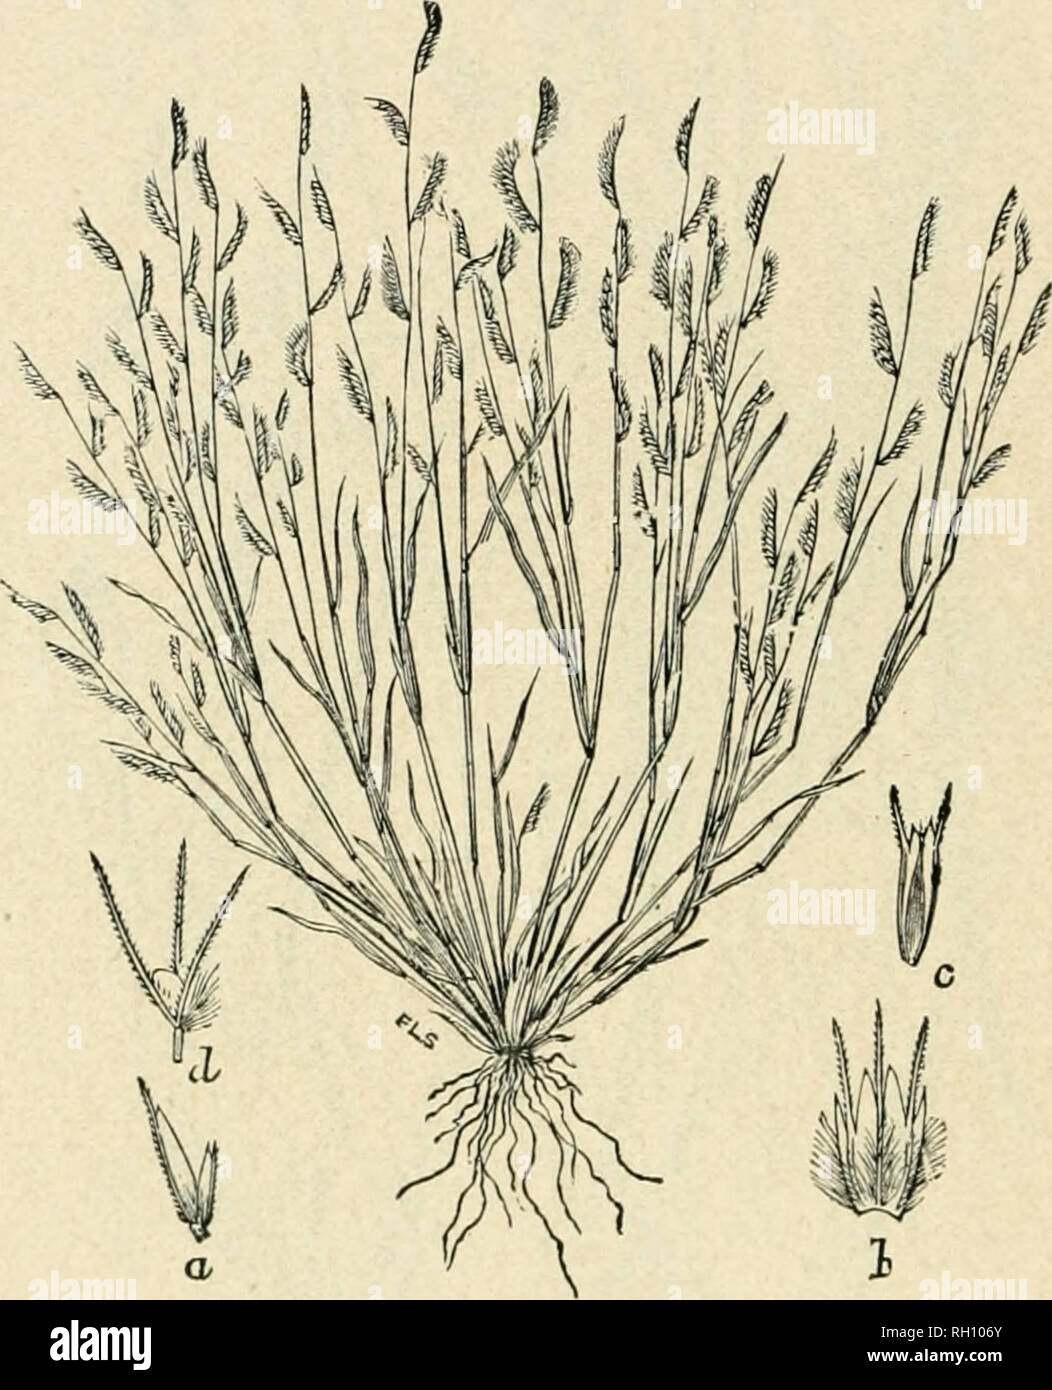 . Bulletin. Gramineae -- United States; Forage plants -- United States. 204. Fig. 500. Bouteloua polystachya (]5entli.) Torr. in Pjicif. Rail. Rep. 5 : 3(16, t. 10. 1857. {Chvudrosimti itohji^taLhyum Benth. Bot. A^oy. Sulpli. 56. 1844.) Six-weeks Grama.—A Kleiidcr and diffusely fsprcading, miioh-brancbed animal, 1 to 4 dm. high, Avitii short, narroiv leaves and 3 to 6 linear spikes about 2 cm. Ion-;, approximate near the apex of the culm or its branches. Spikelets with glabrous, uueqnal empty glumes (a), the larger second one 1.5 mm. long, and 4-lobed ilowcring glumes (//), which are awned bet Stock Photo